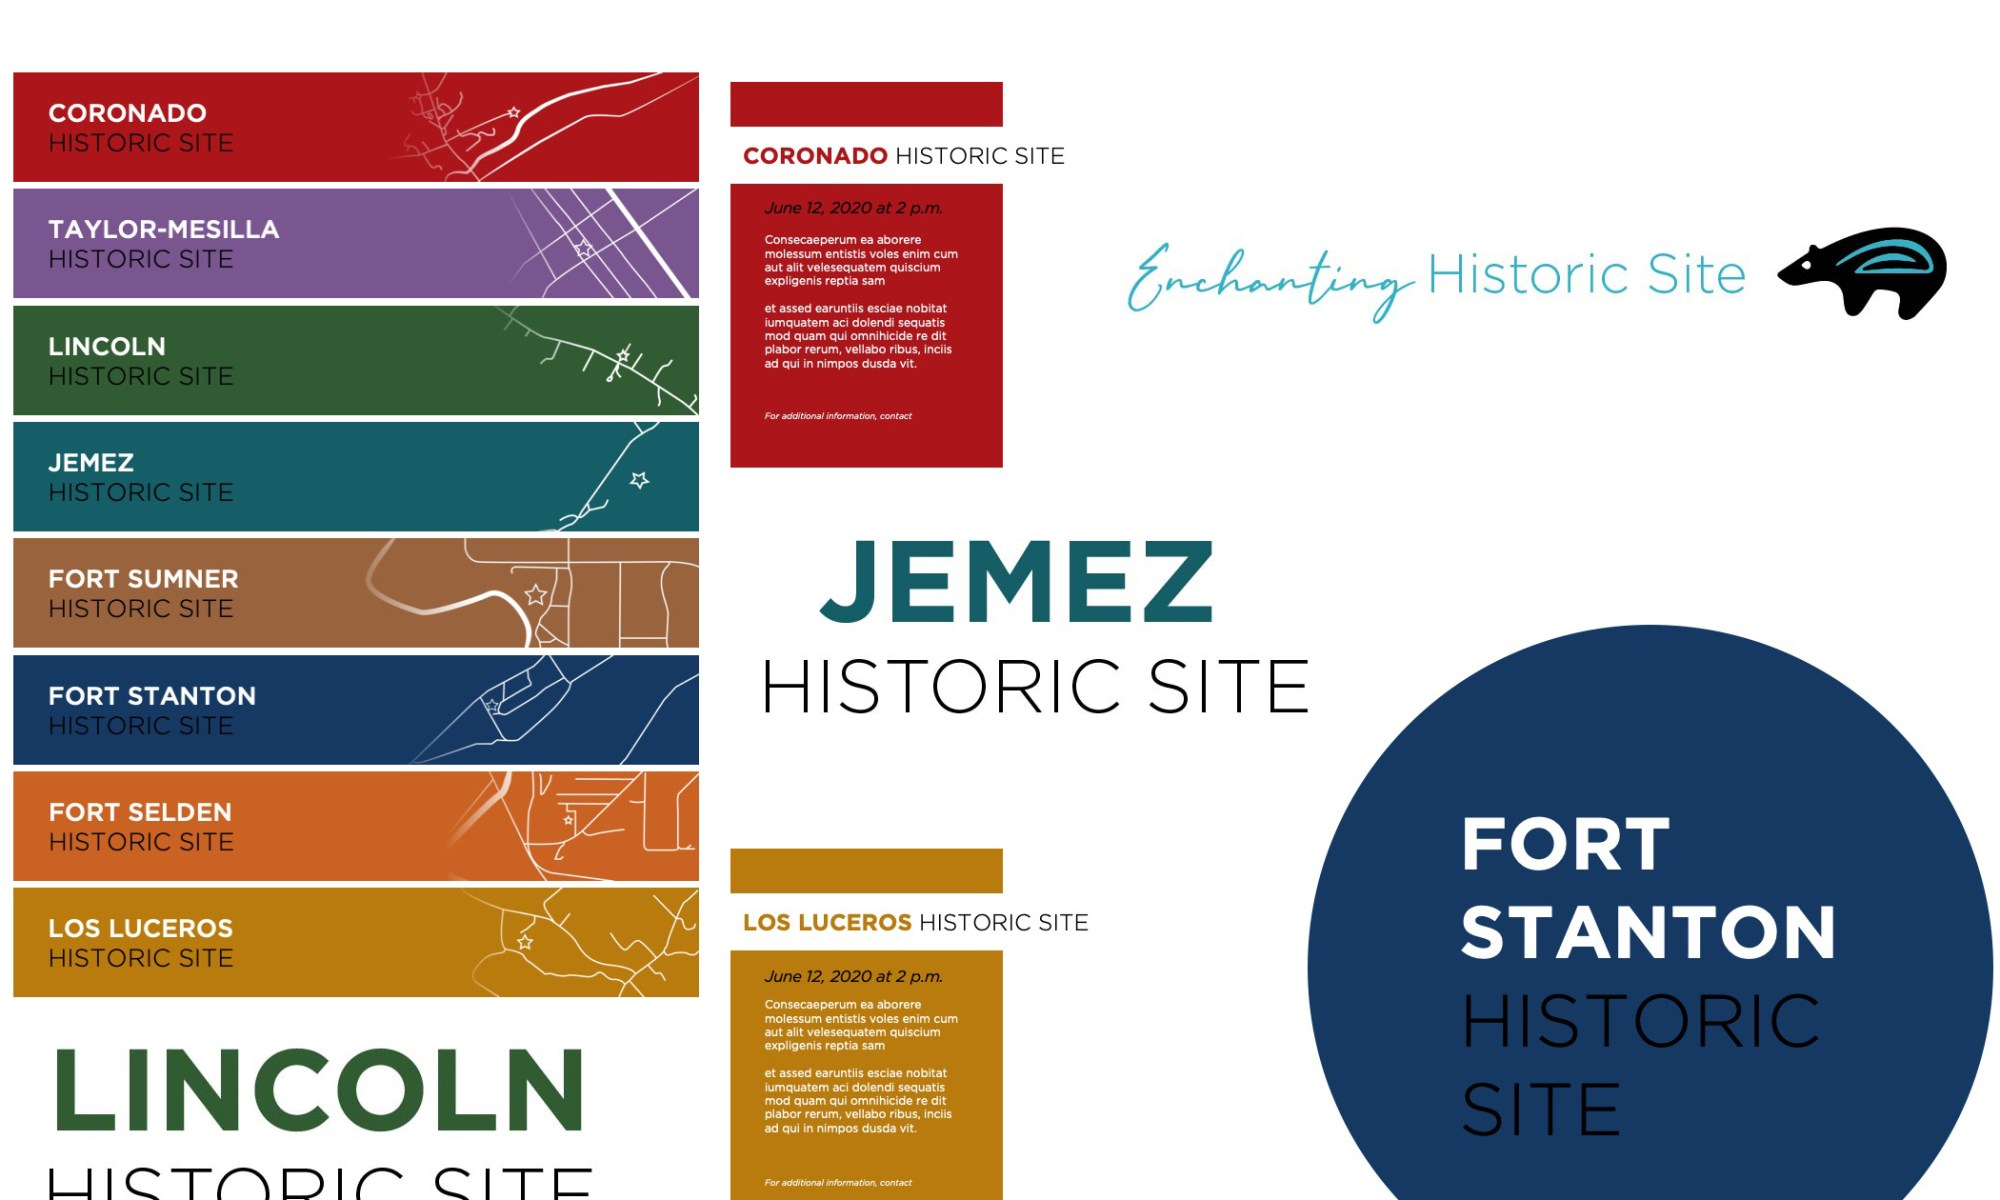 Social media branding samples for New Mexico Historic Sites